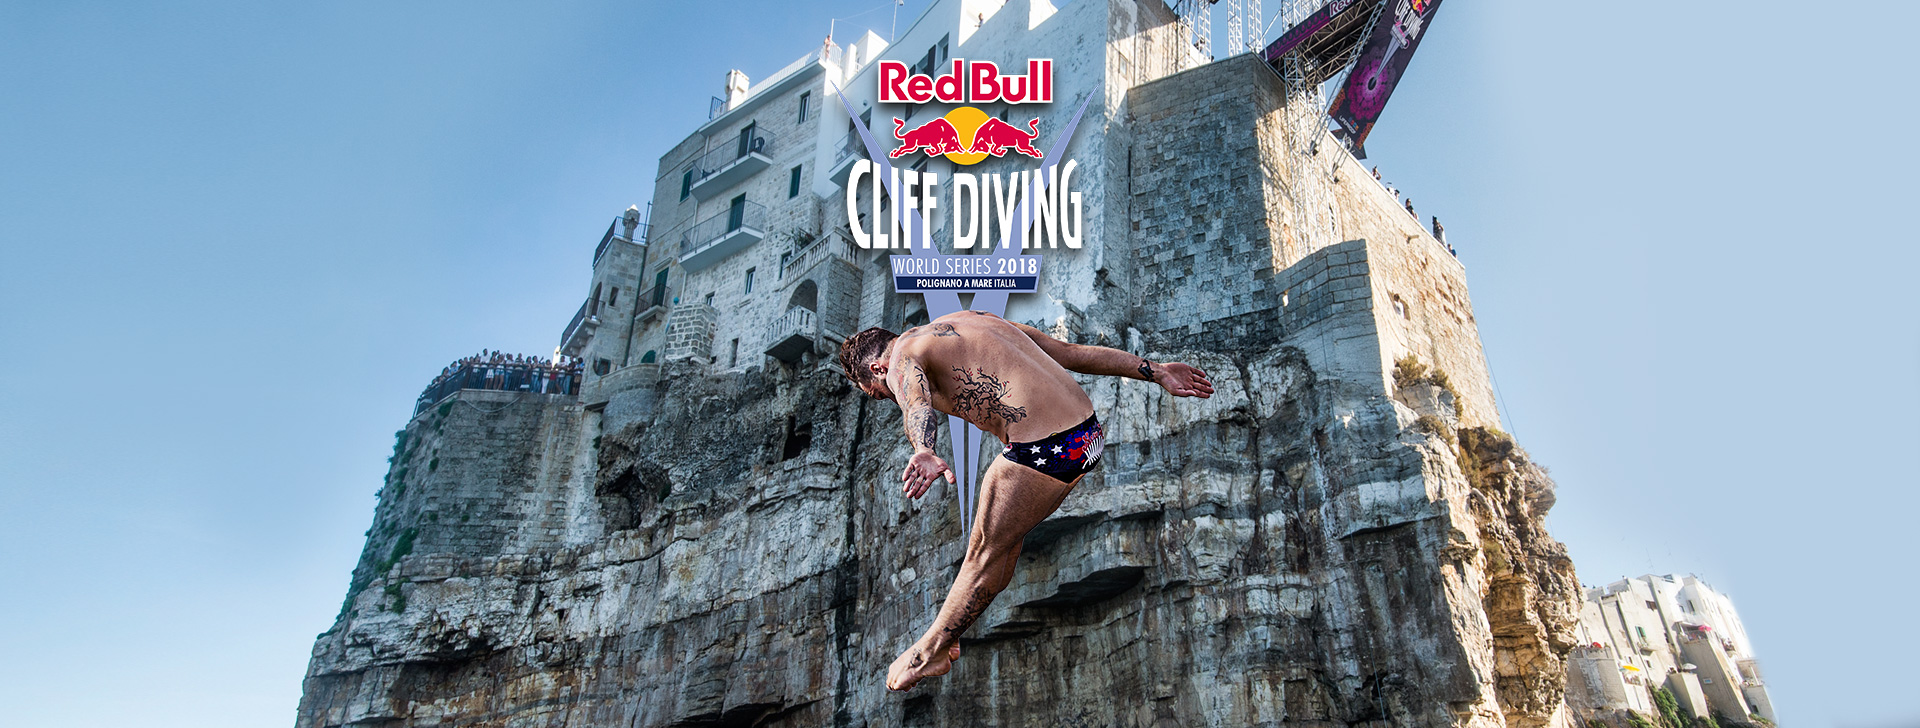 Red Bull Cliff Diving World Series 2018